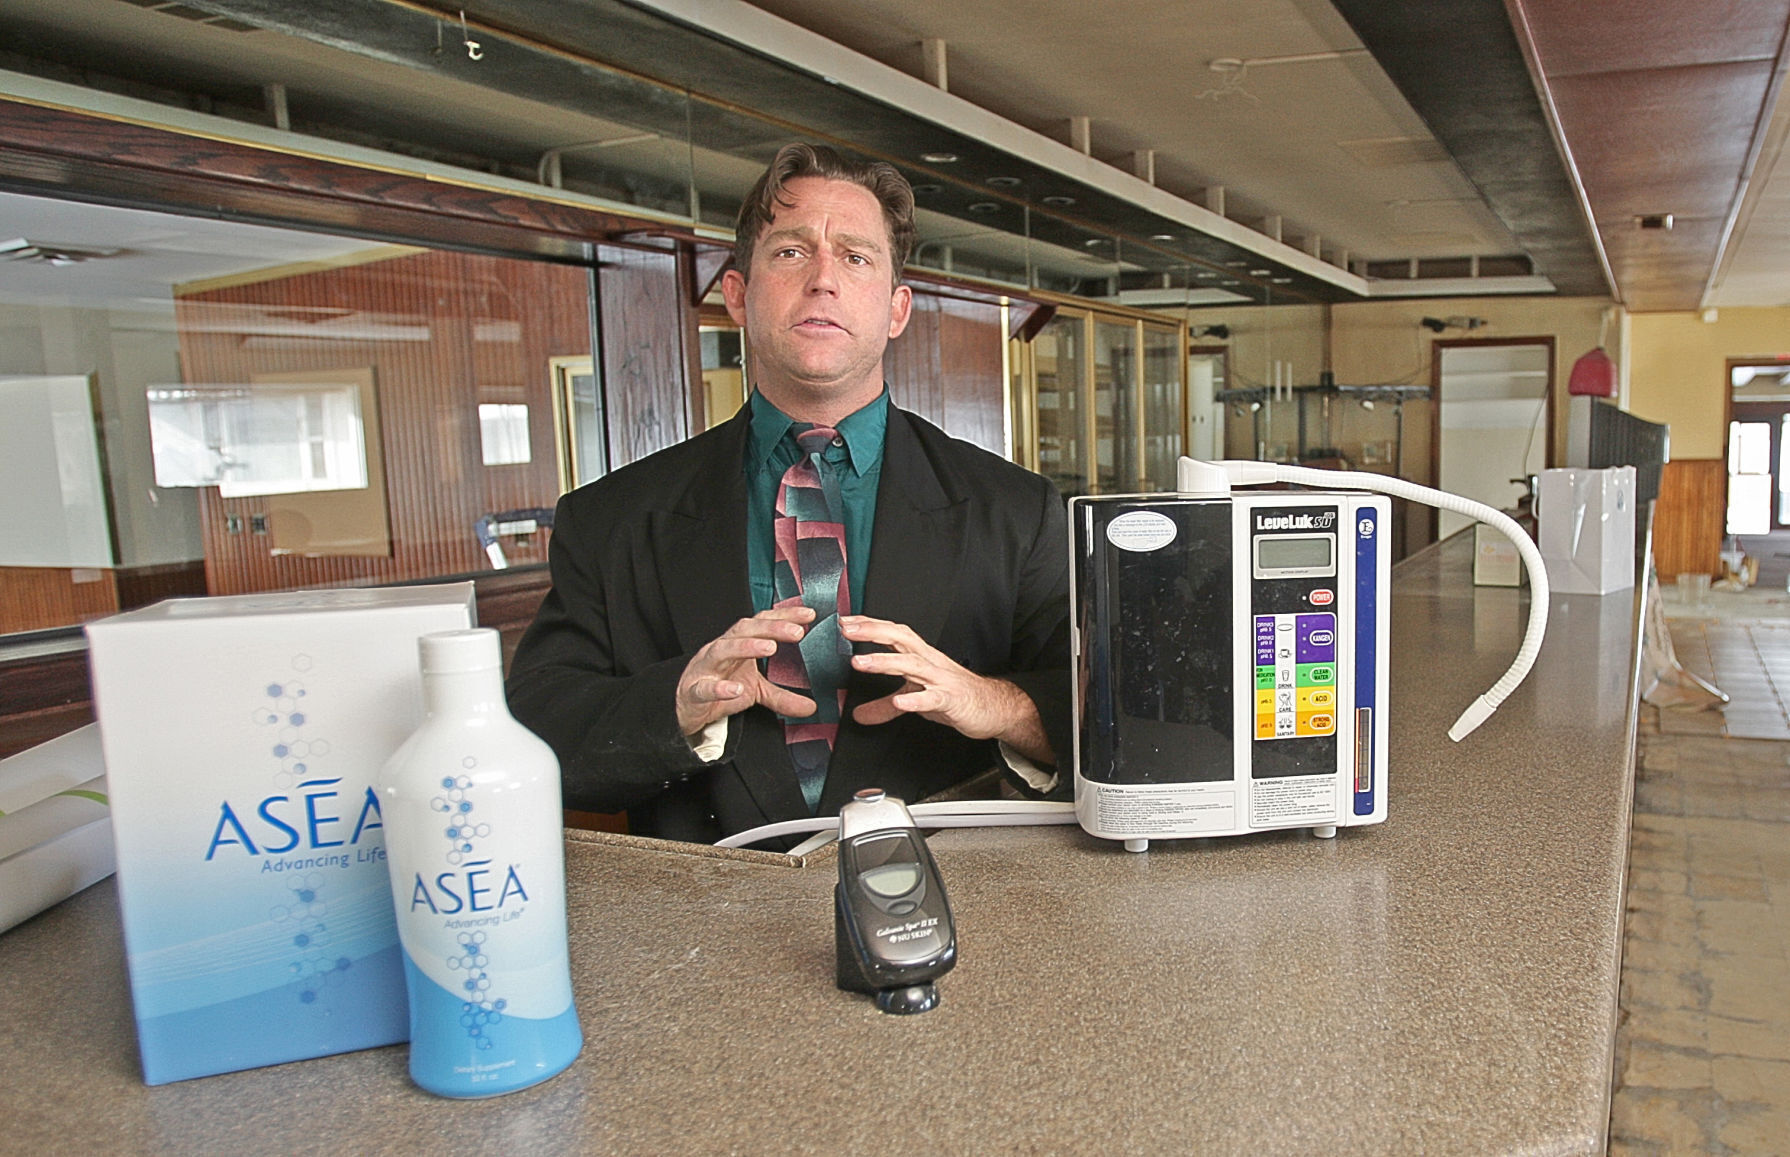 Montana medical pot suit should be dropped says state